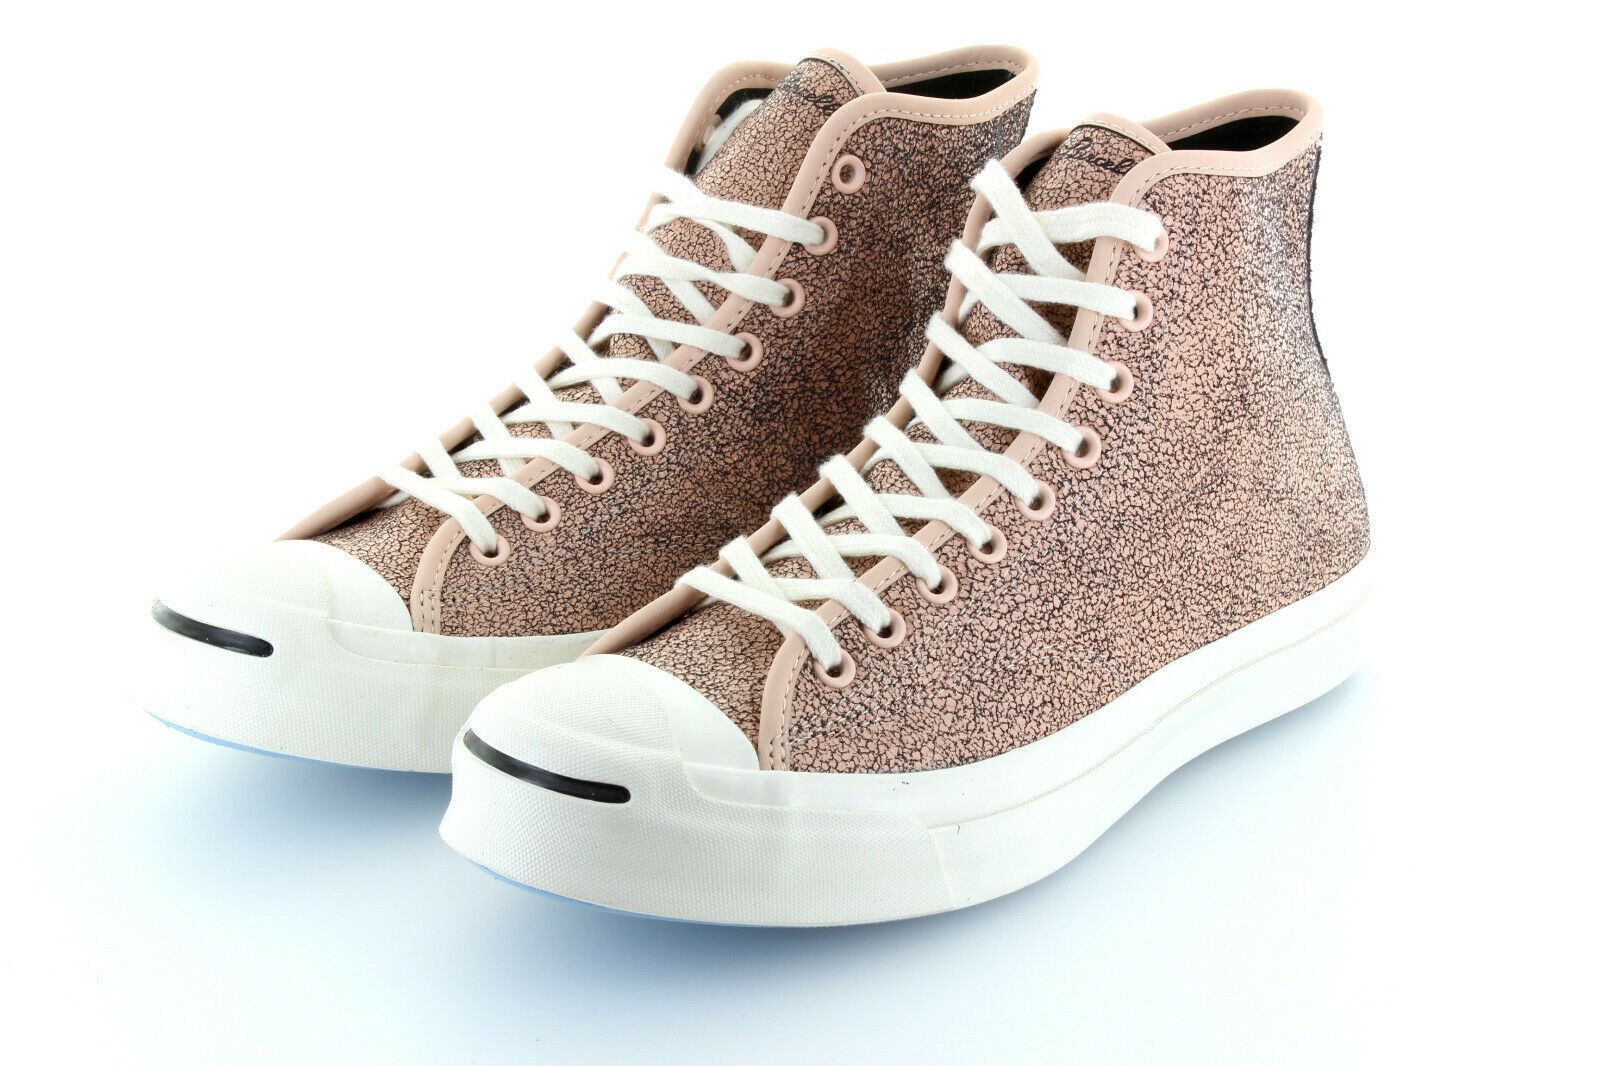 Converse Jack Purcell Hi Champagner Damage Leather Limited 42,5   43 US9